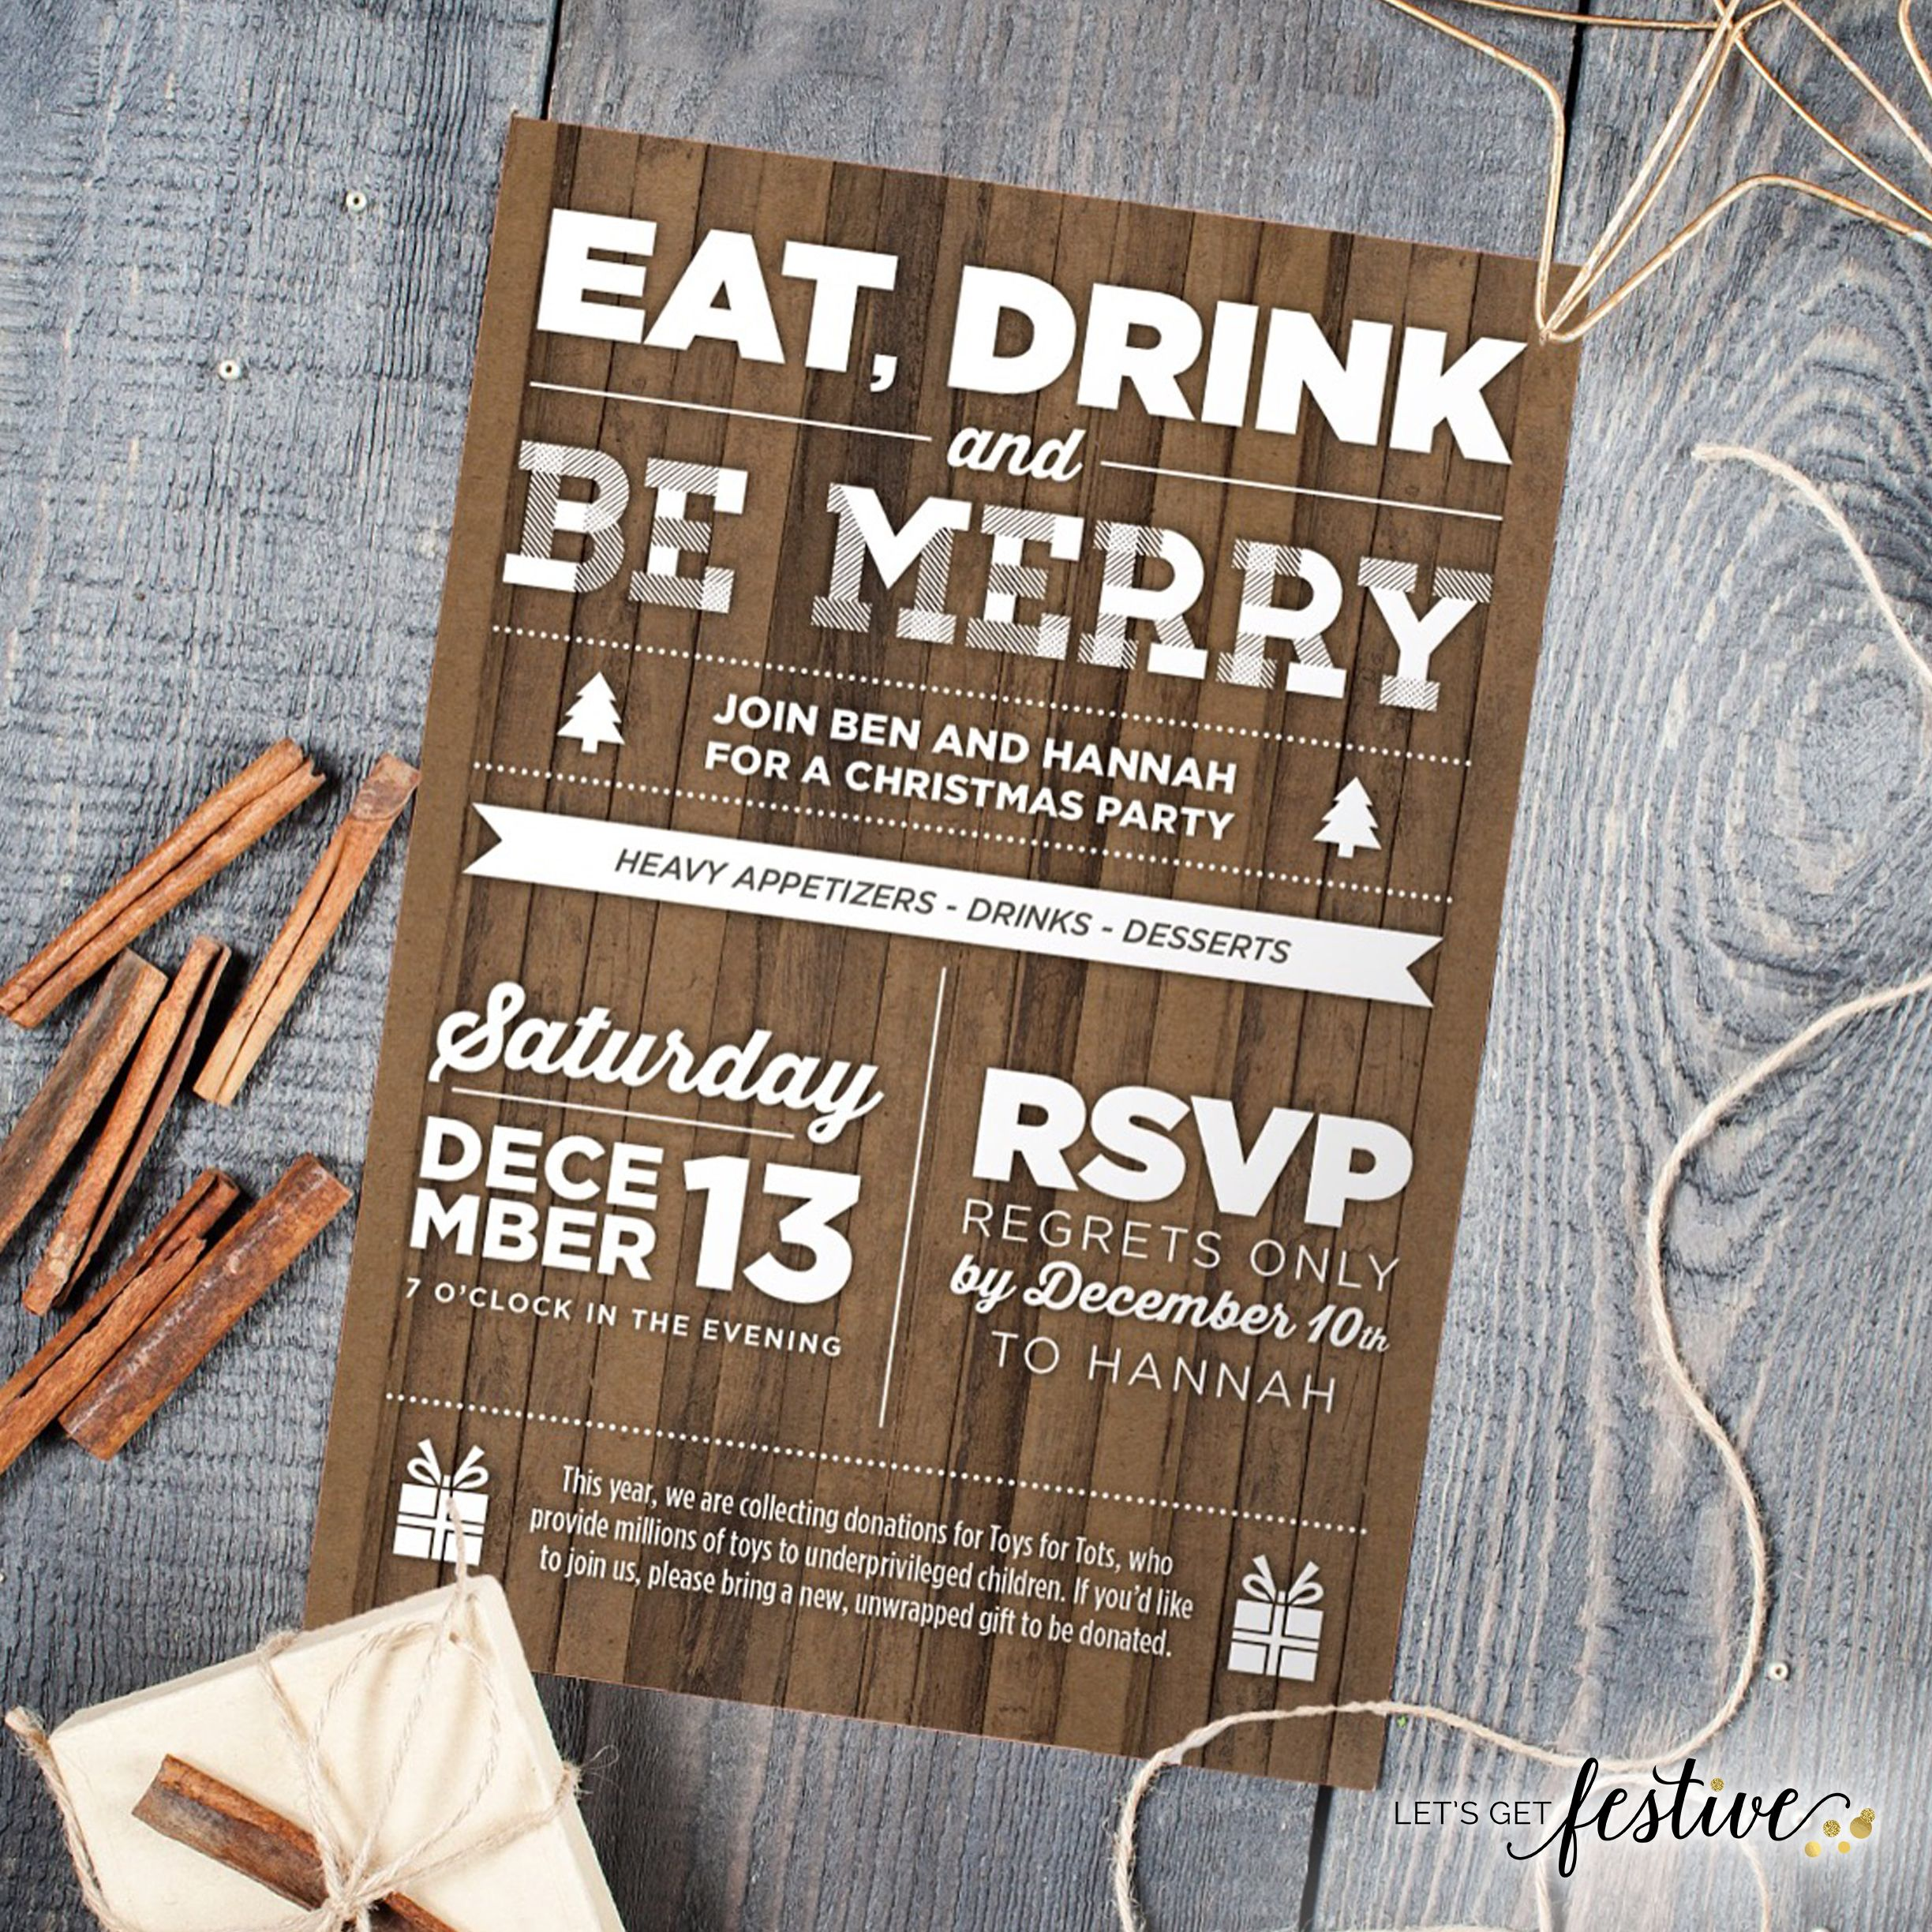 Eat drink be merry rustic christmas party invitations rustic christmas party invitations letsgetfestive wedding stopboris Choice Image